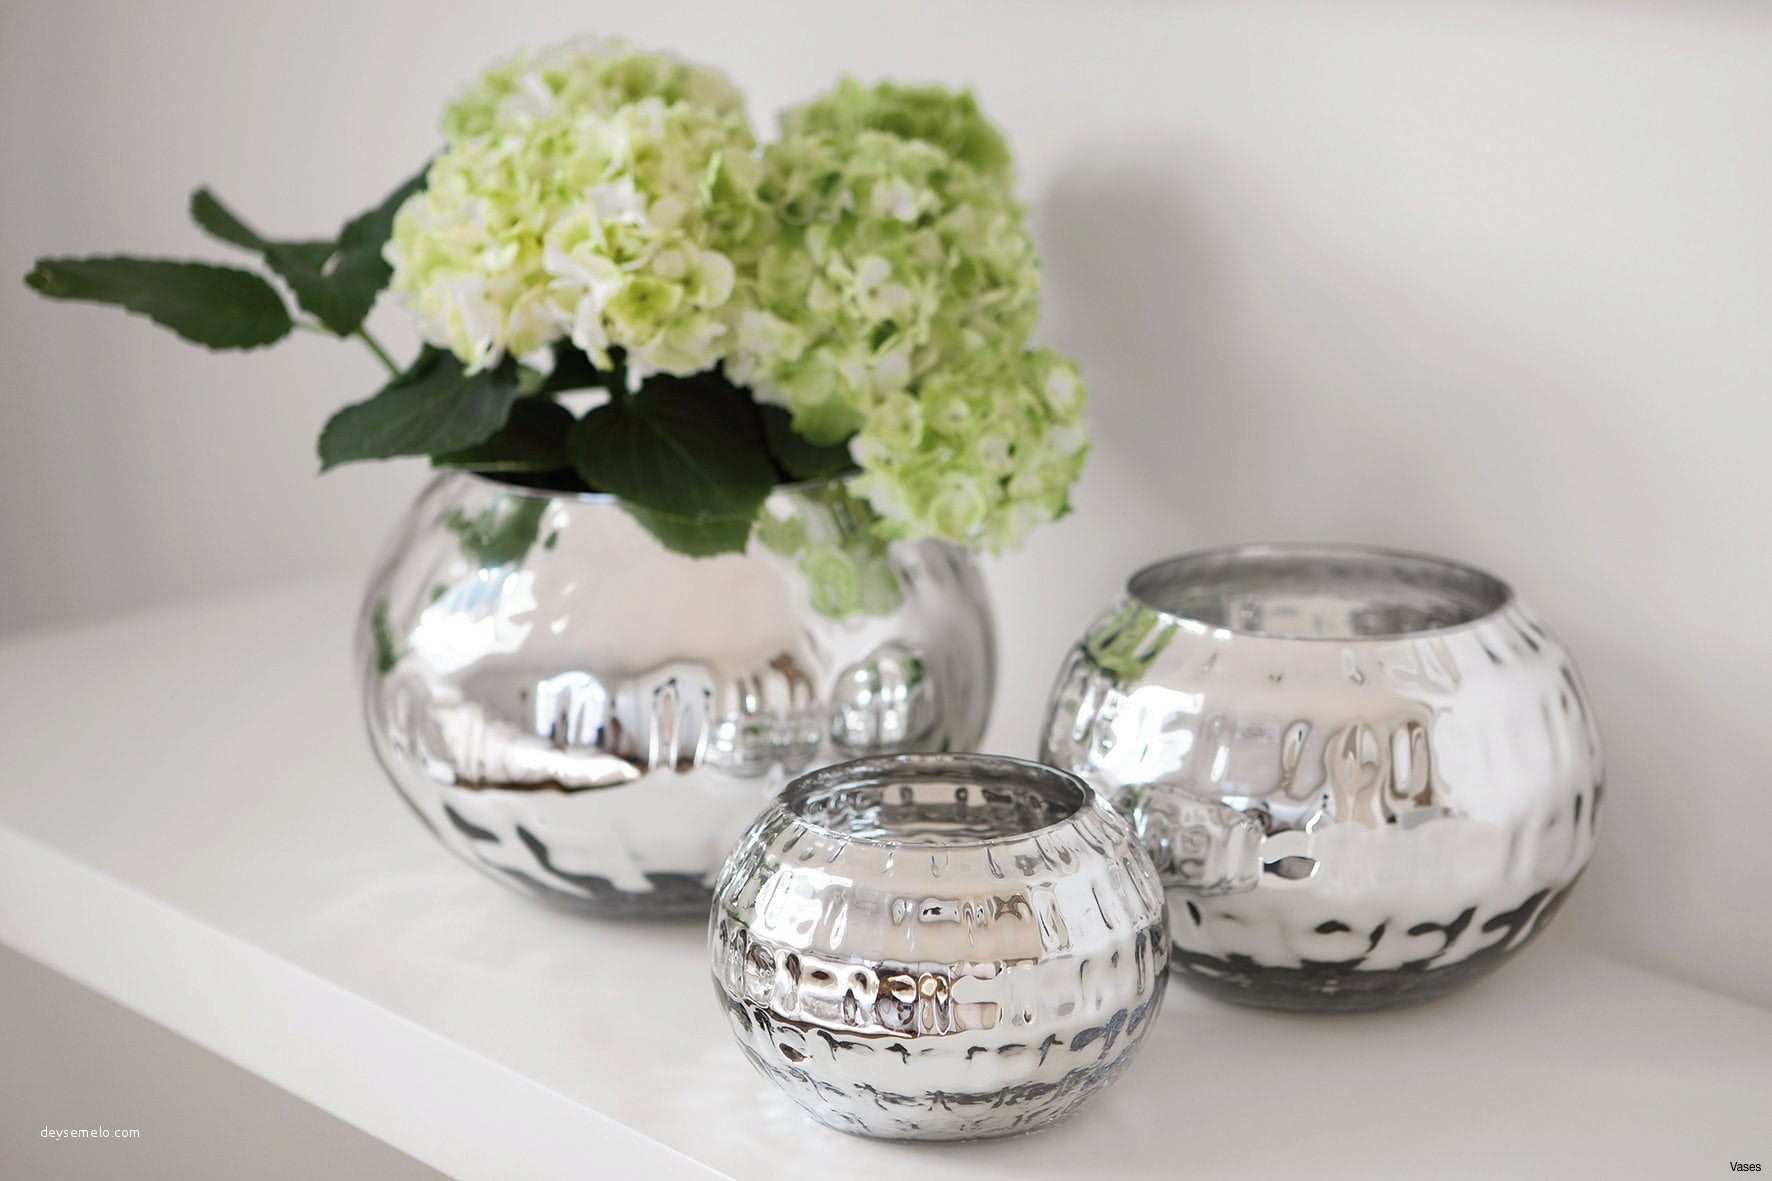 glass pedestal bowl vase of 2018 mercury glass decor and 50 unique glass decoration ideas regarding amazing mercury glass decor and mercury glass bowl vase unique vases silver vase with flowers